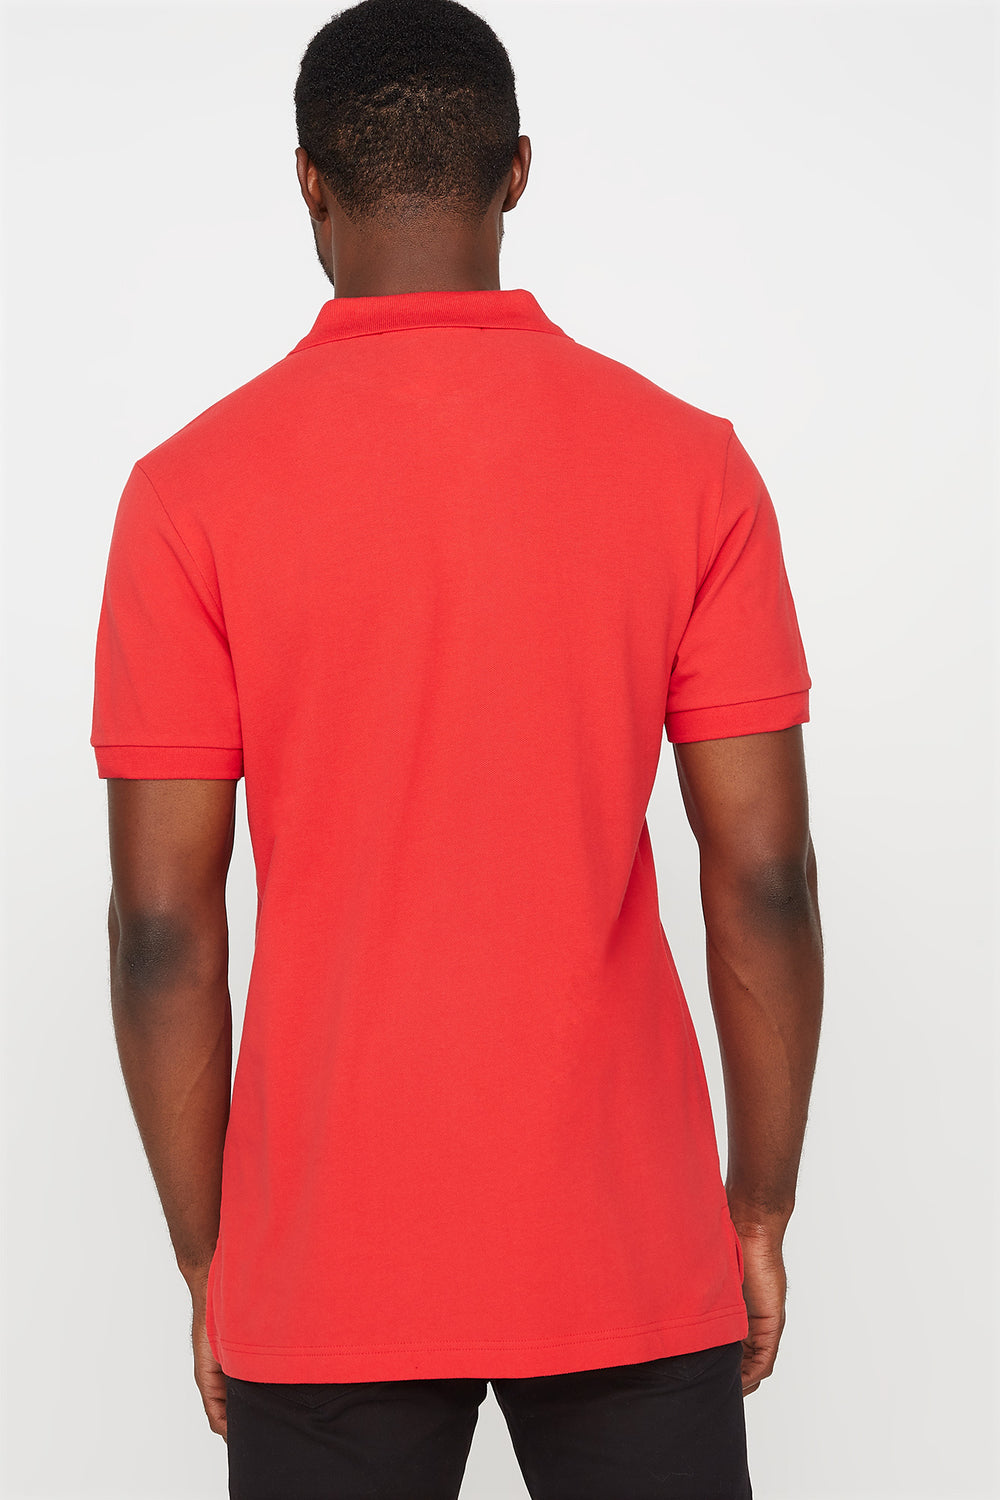 T-shirt polo uni brodé Rouge